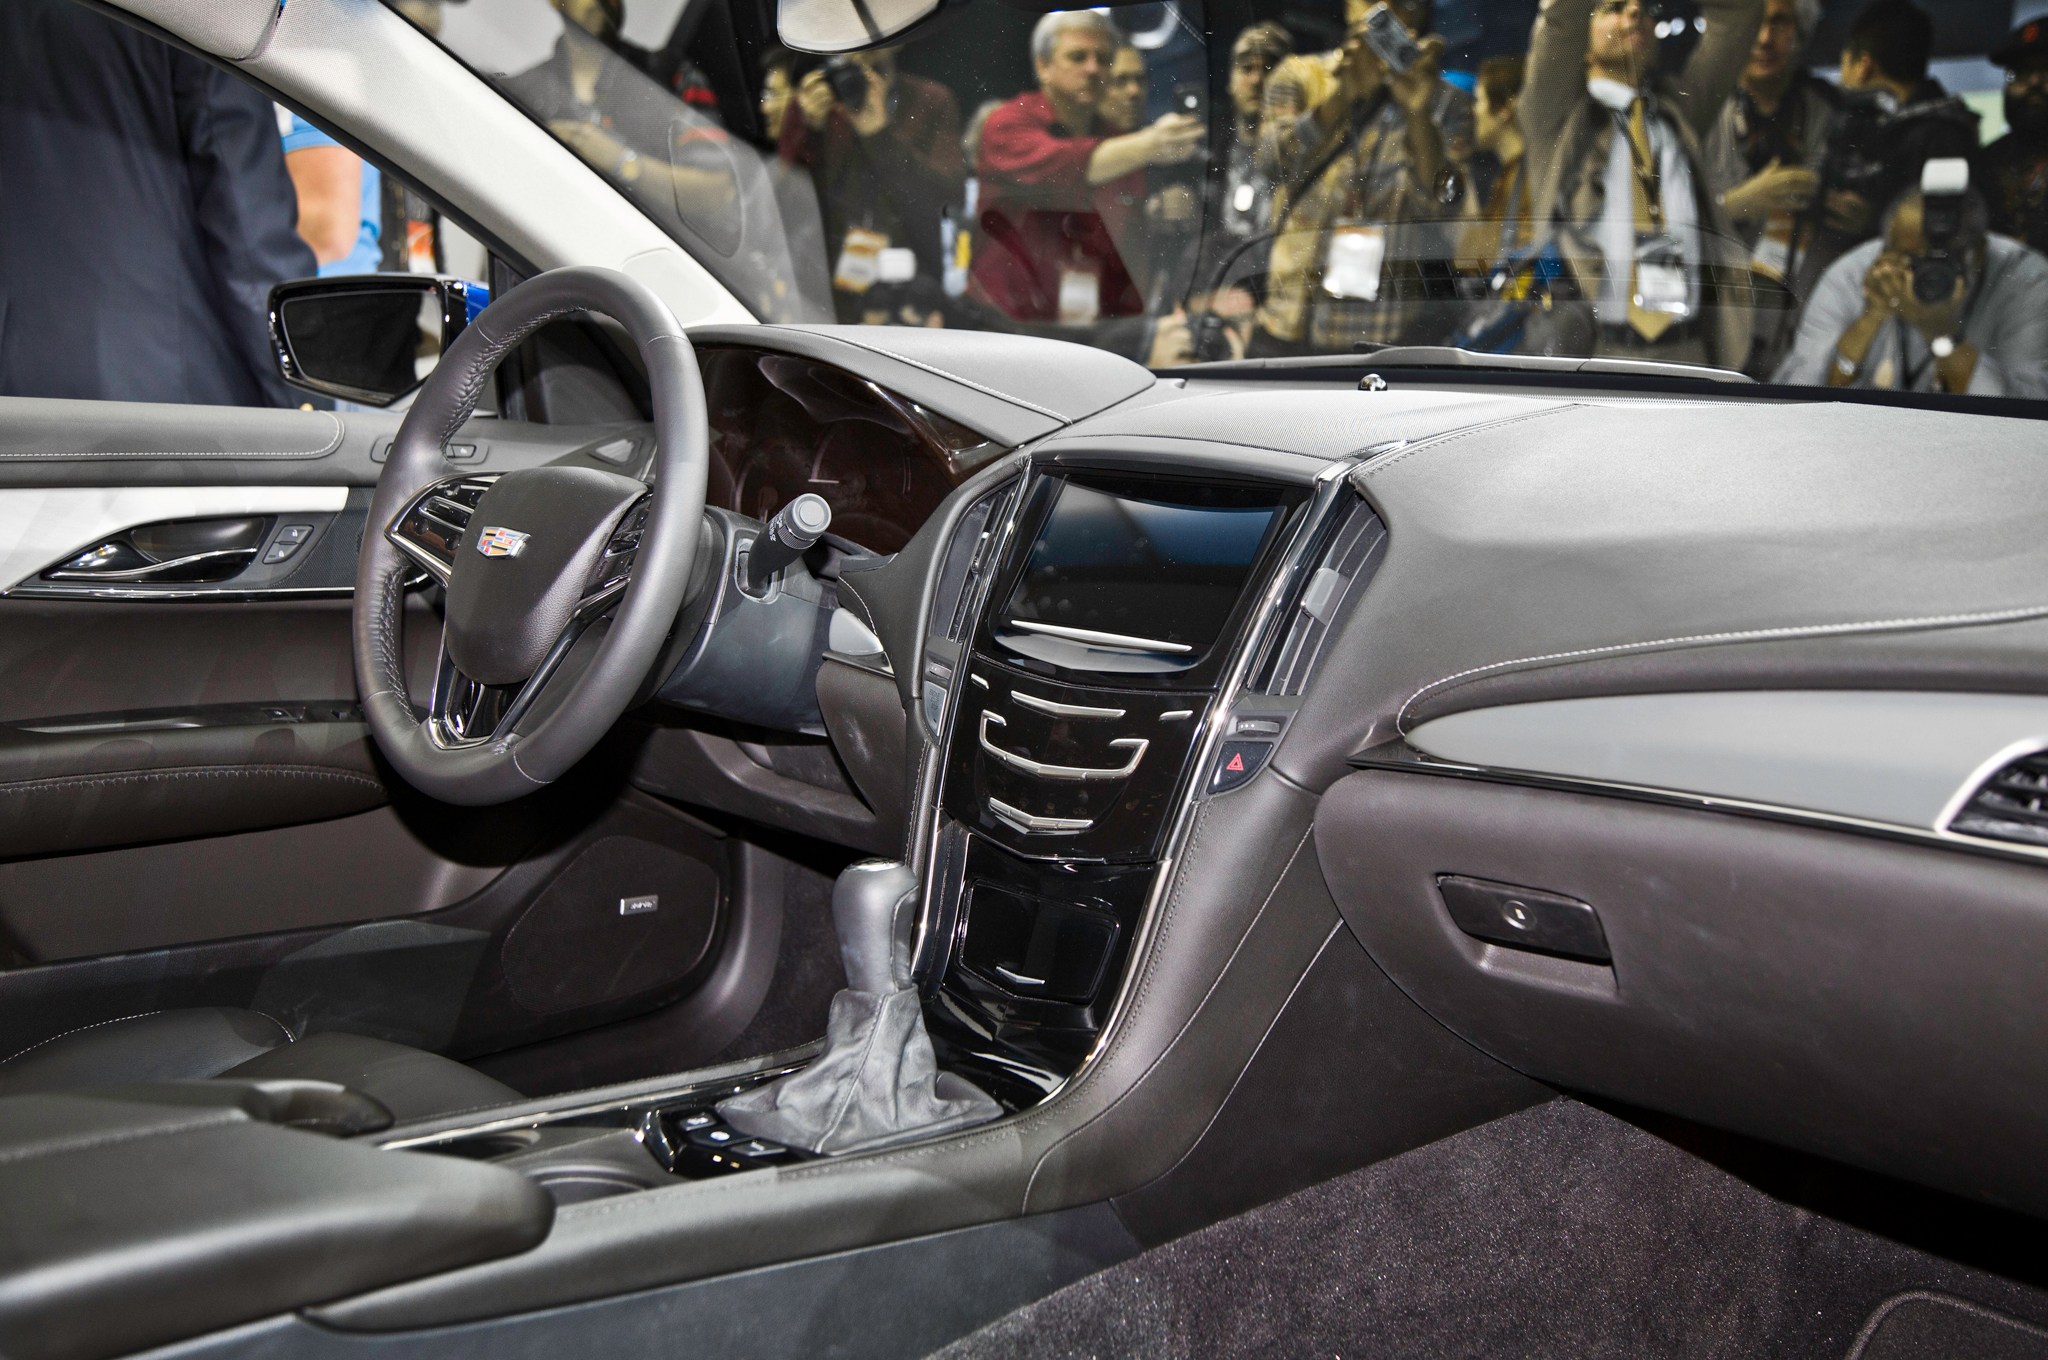 2015 Cadillac ATS Coupe Interior Dash